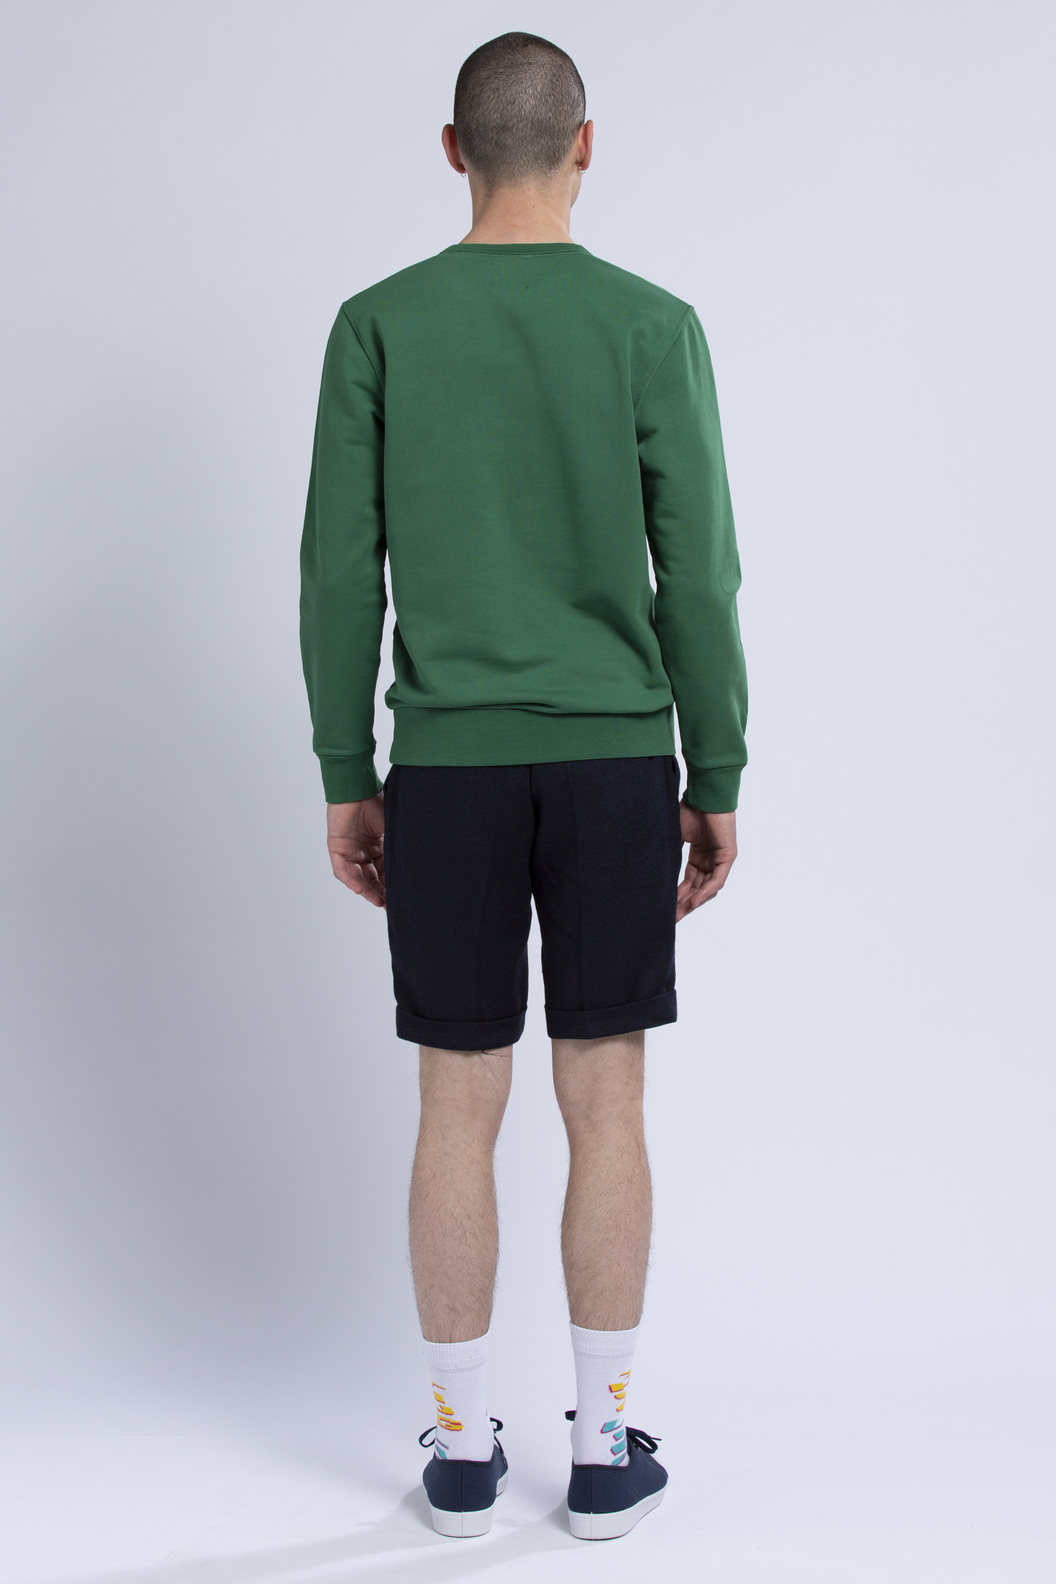 SWEAT CDP FAMILLES - Green